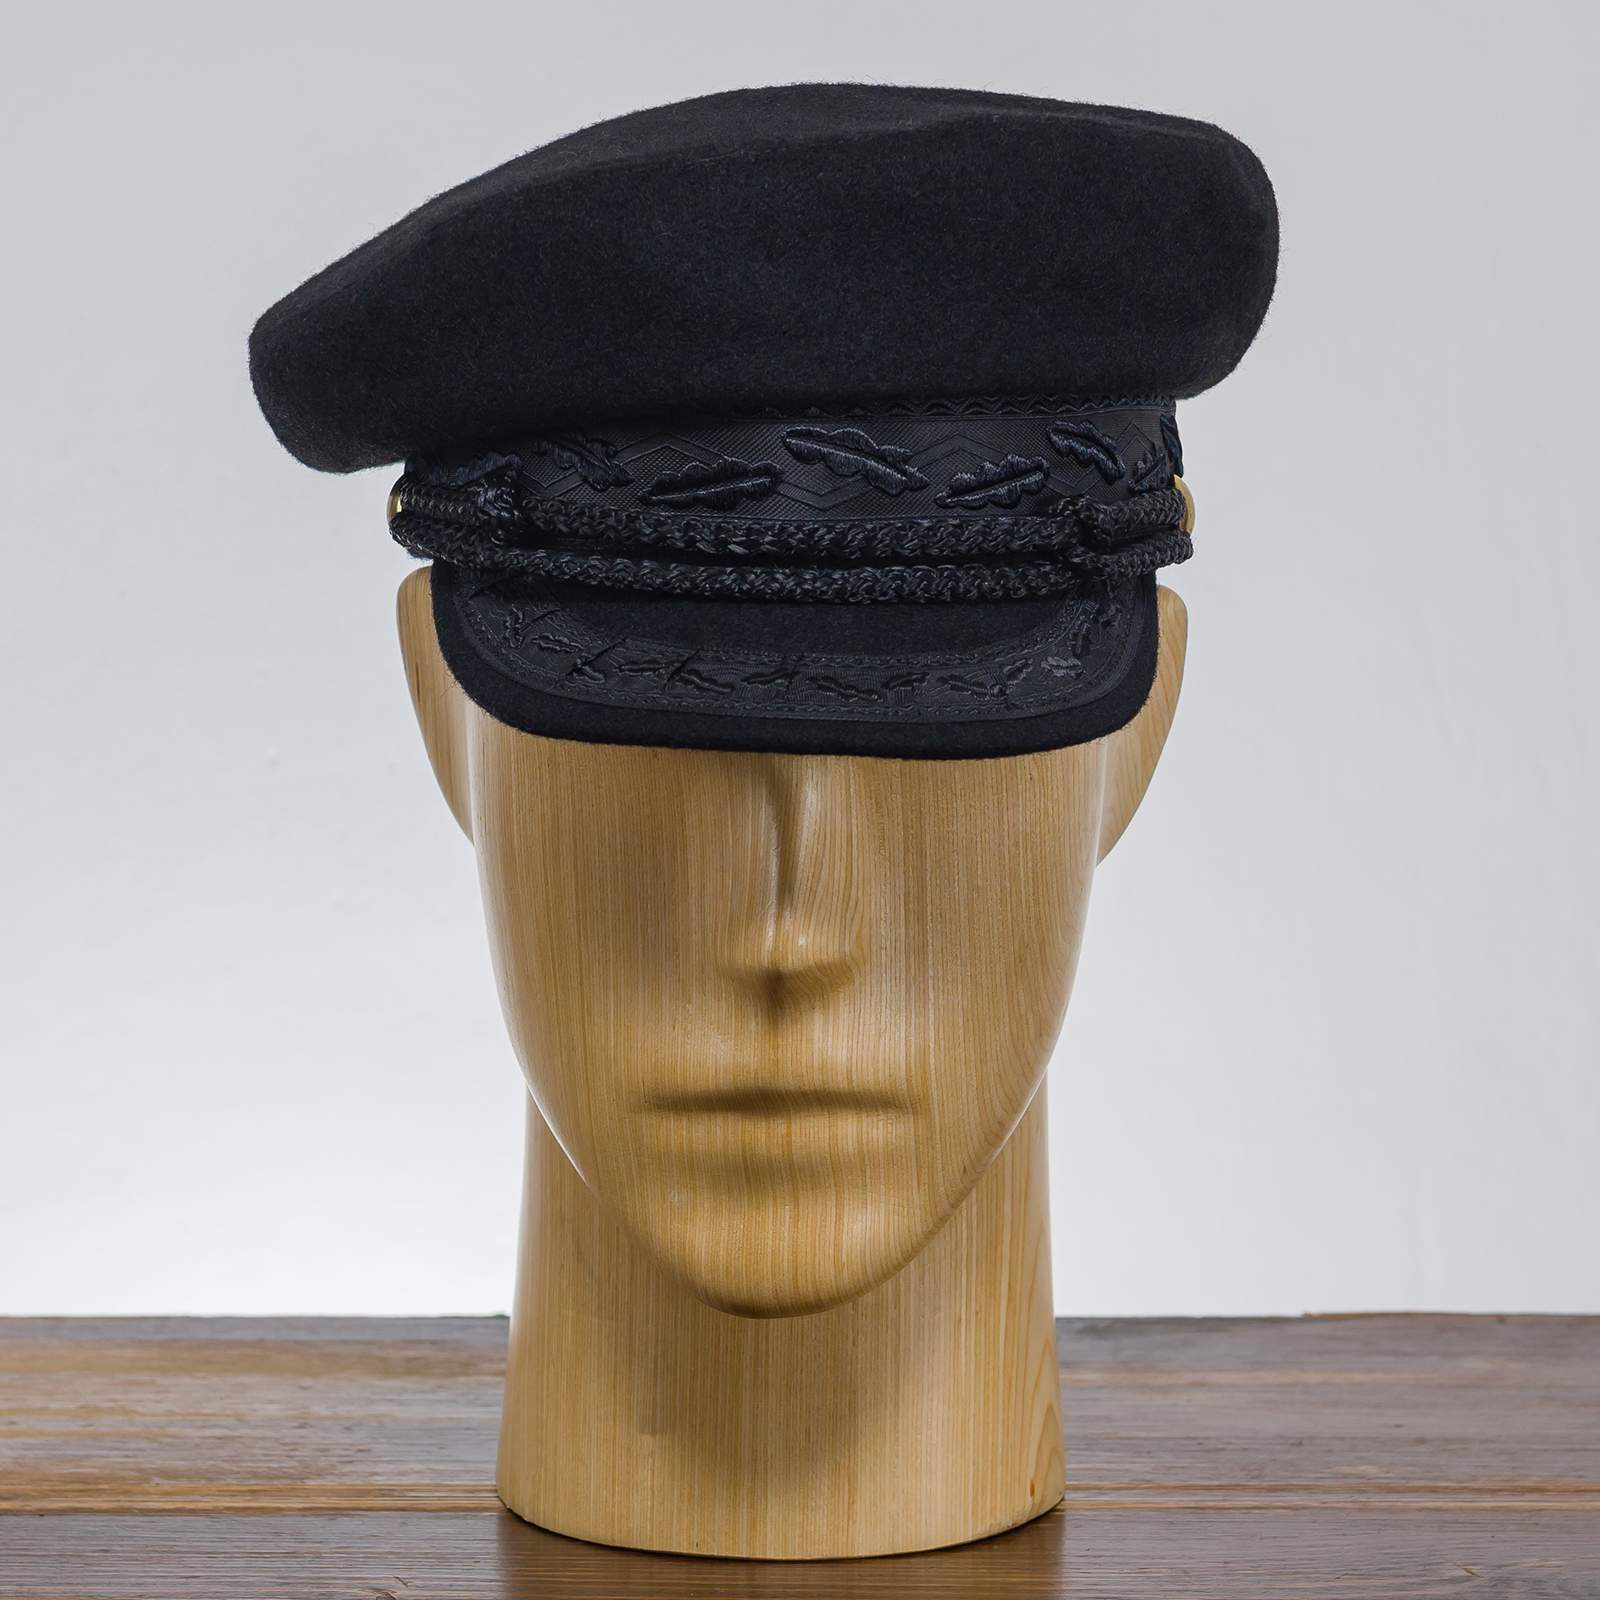 Wool traditional marine breton cap merchant fleet sailor mariner captains trawler dragger maritime seafarer boatswain yachtsman